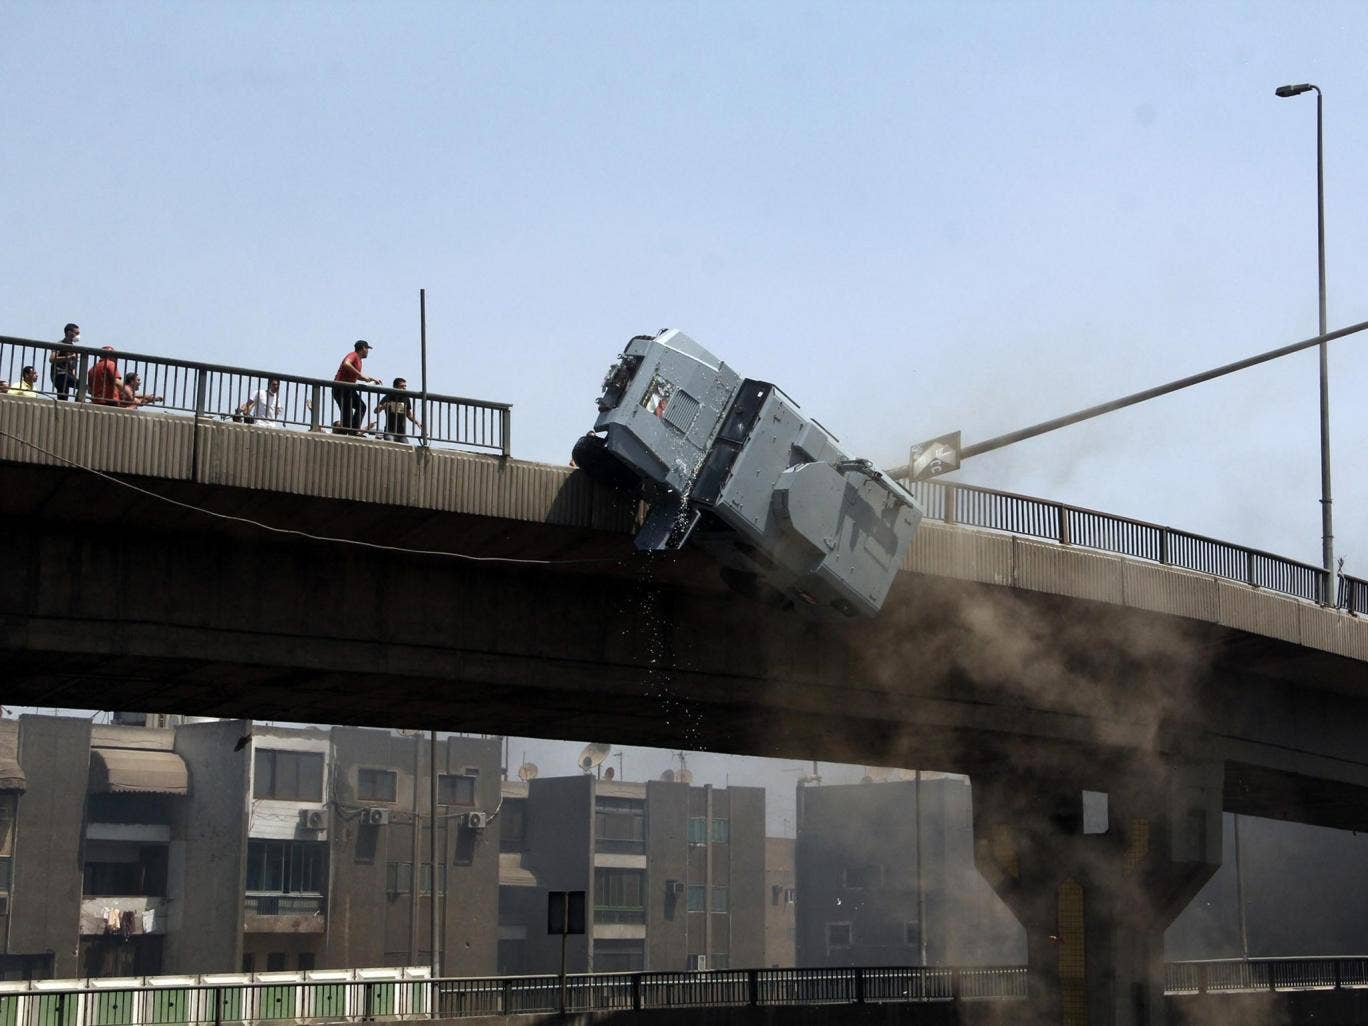 A police vehicle is pushed off the 6th of October bridge by protesters close to the largest sit-in by supporters of ousted Islamist President Mohammed Morsi in the eastern Nasr City district of Cairo, Egypt